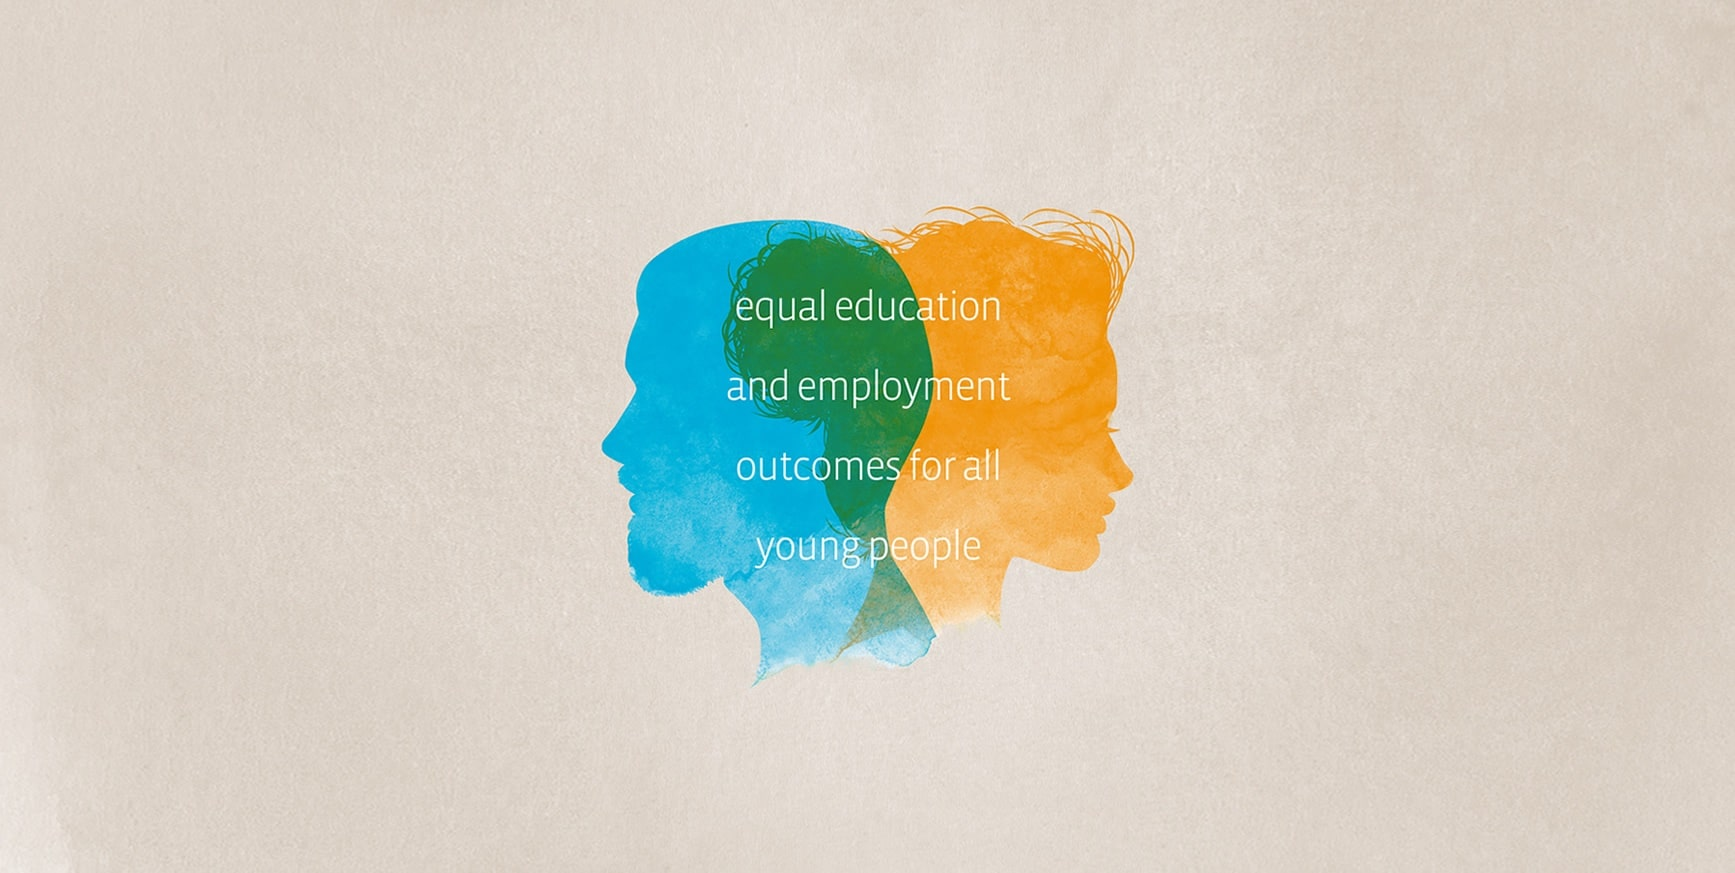 Equal education and employment outcomes for all young people.